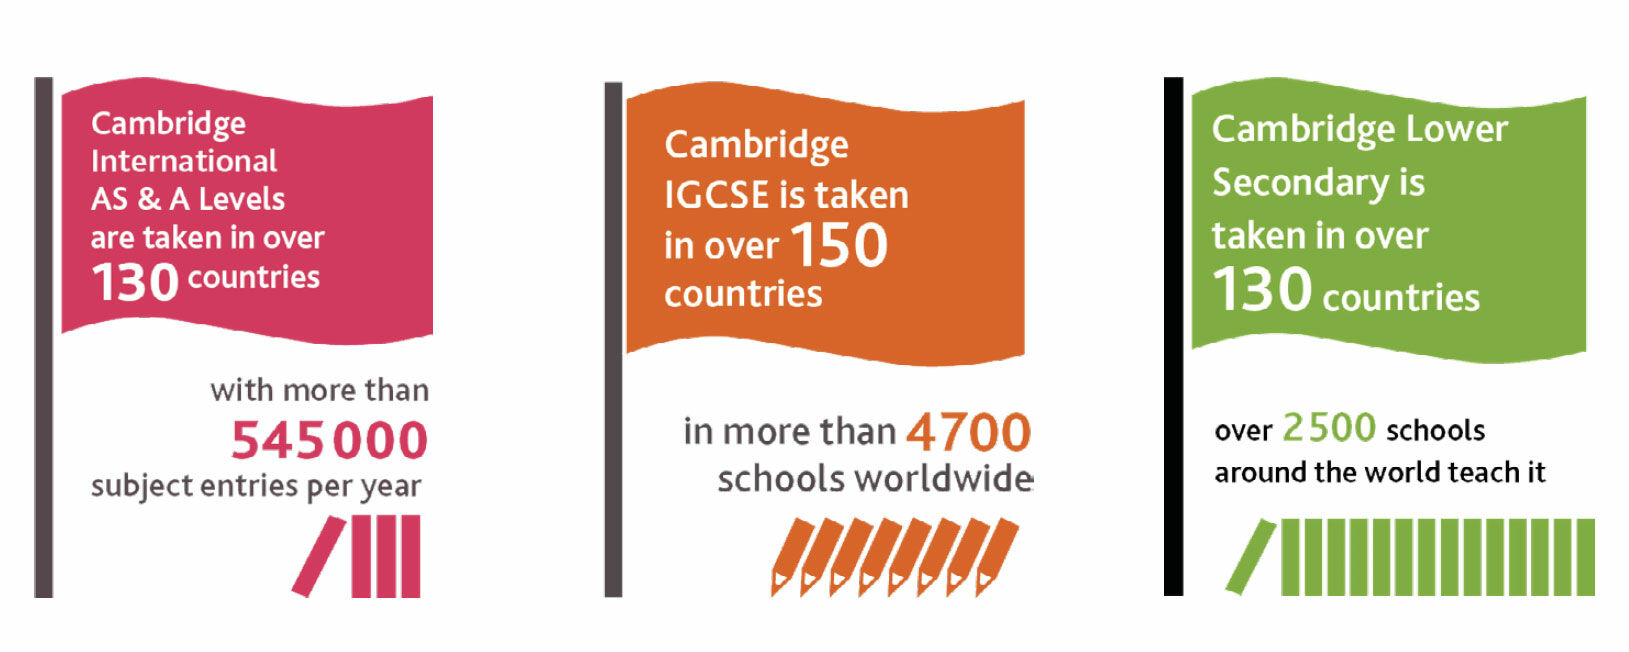 infographic illustrating the benefits of the Cambridge International system